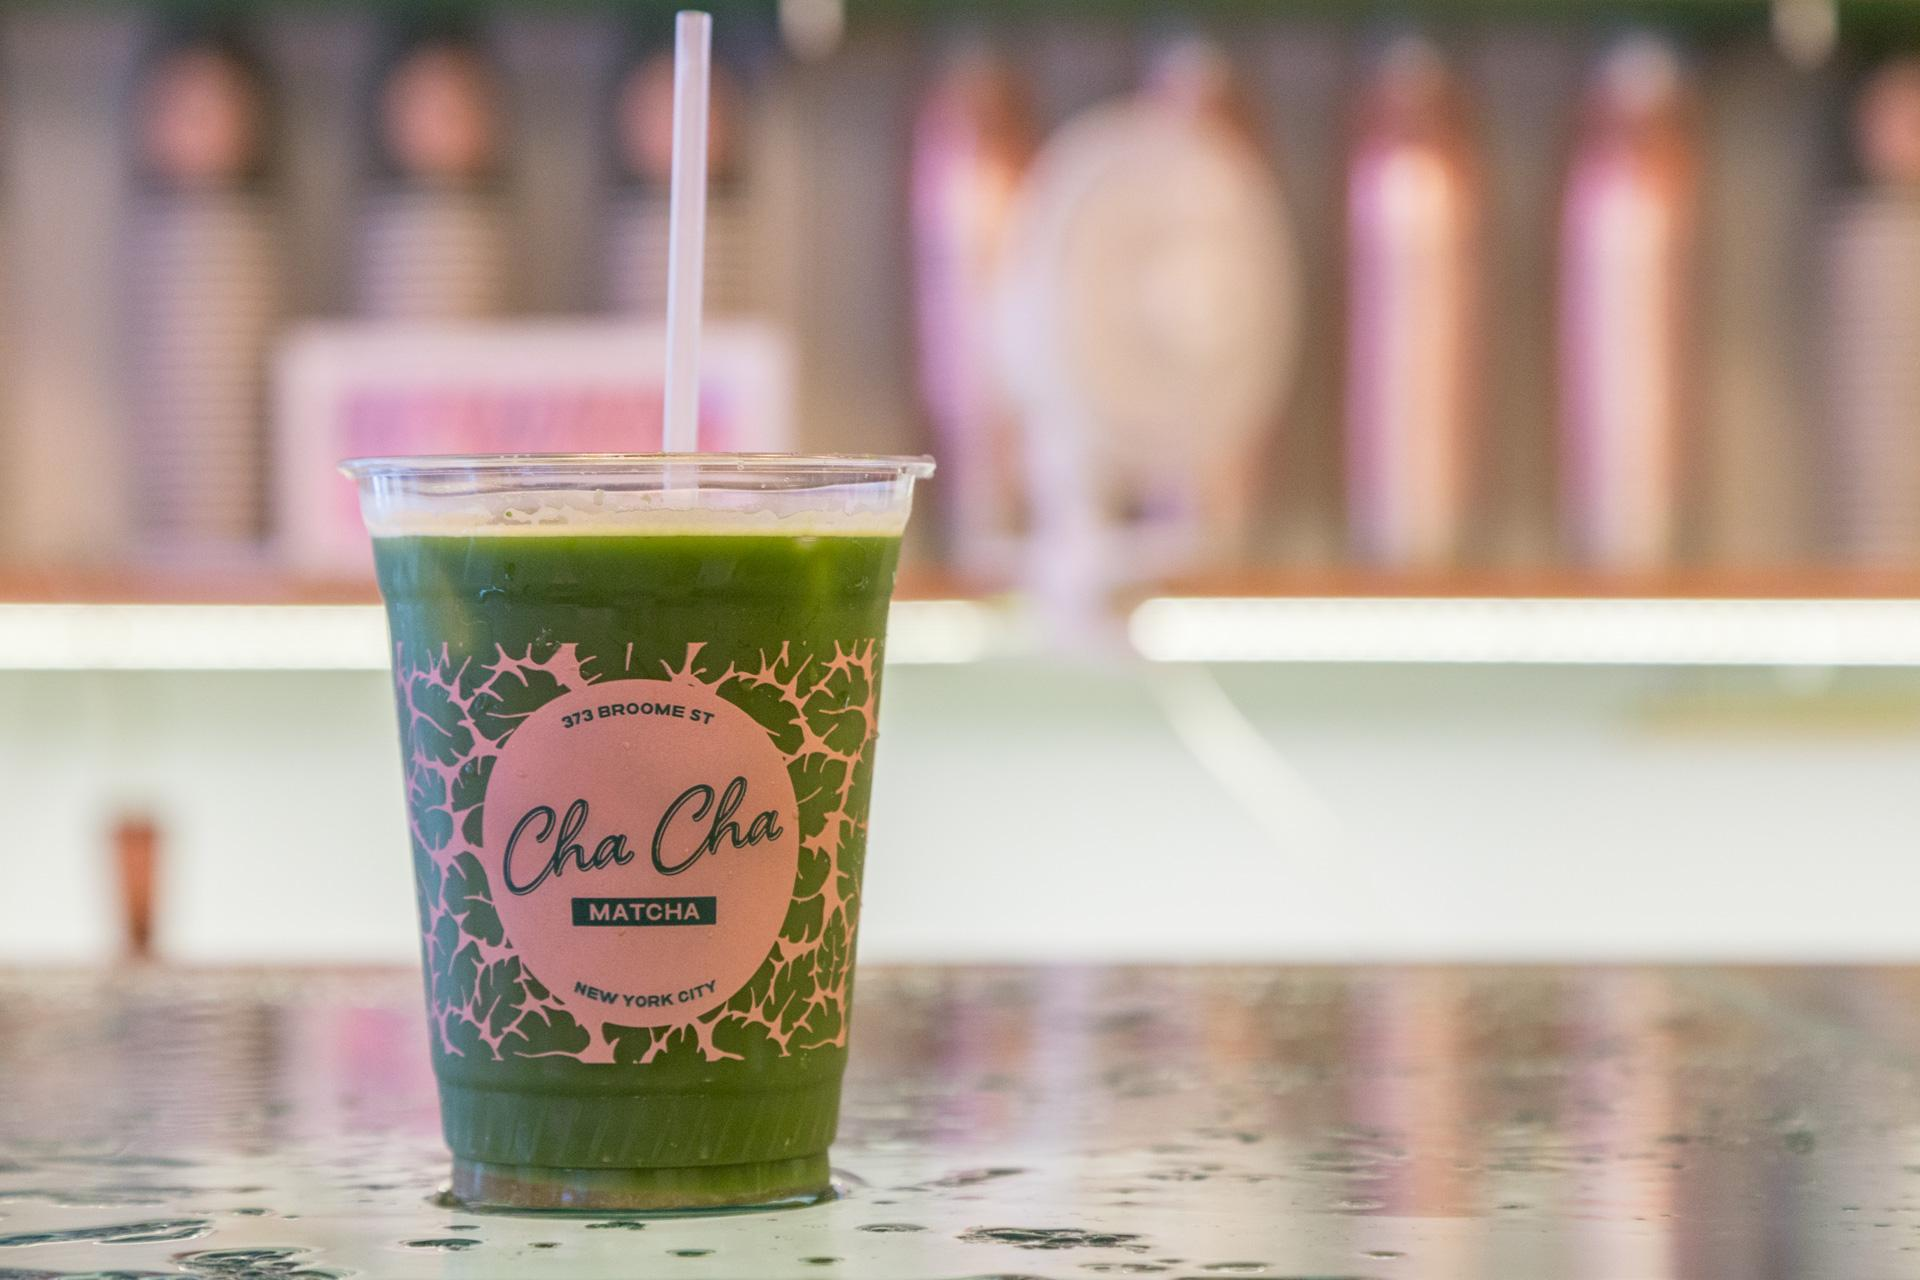 newyorkcool_mingle_cha cha matcha